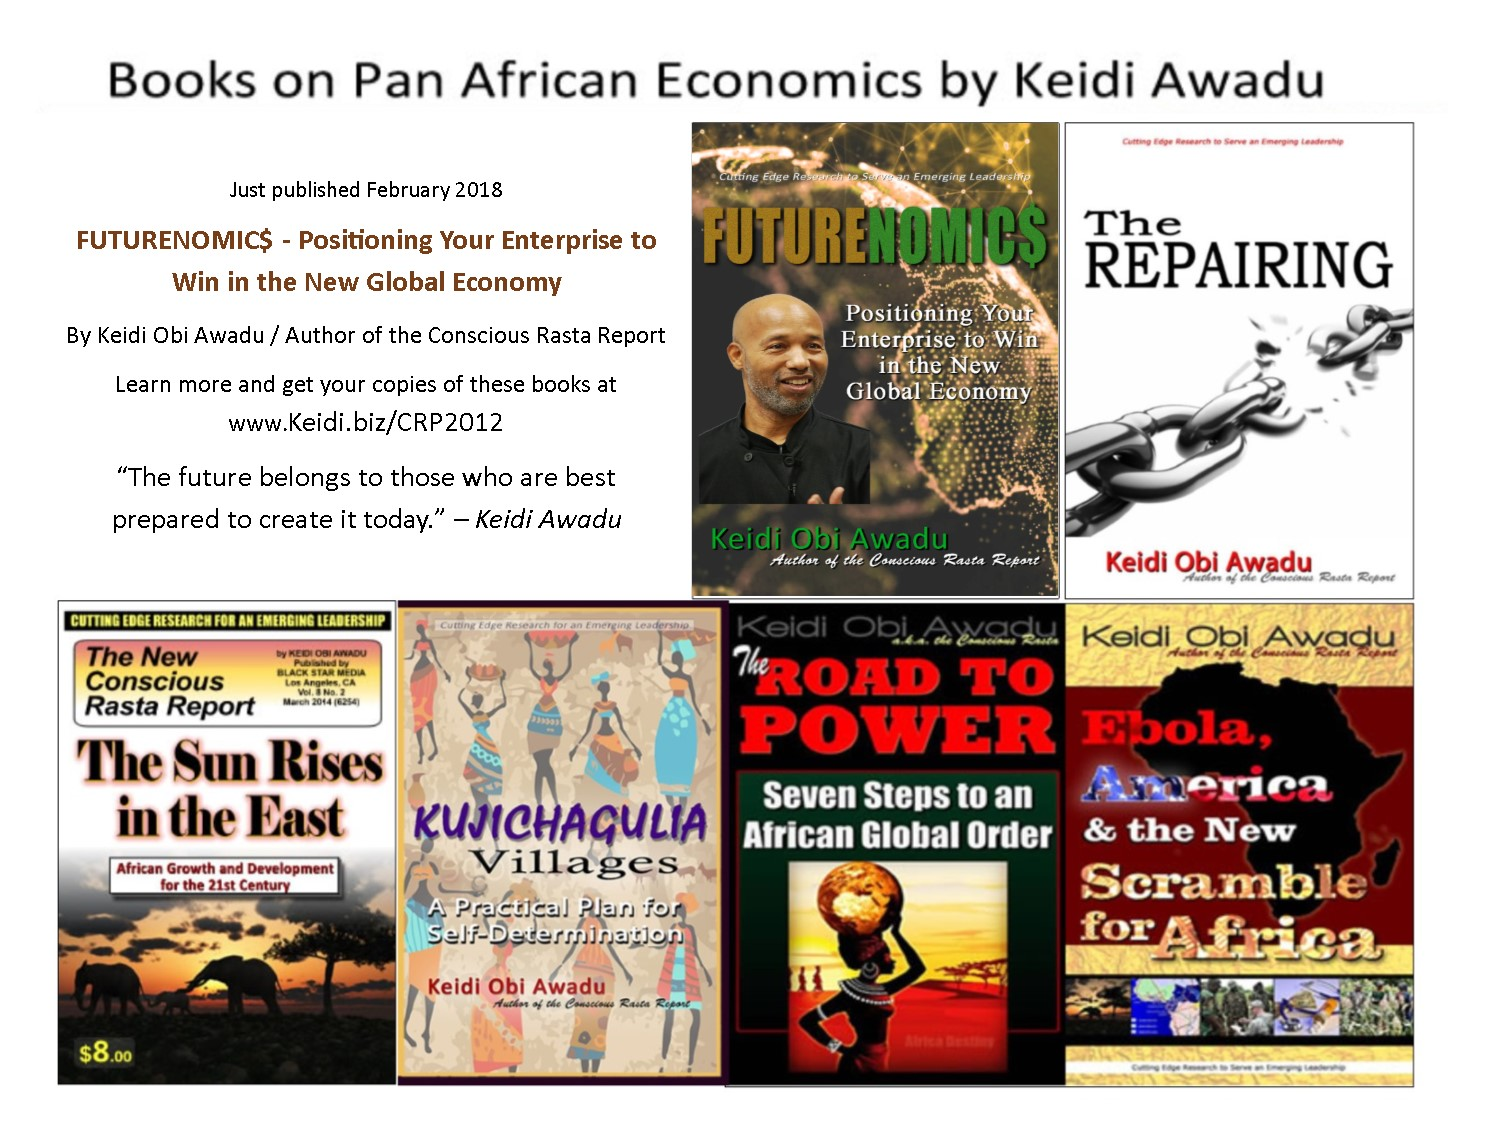 Pan African Books by Keidi